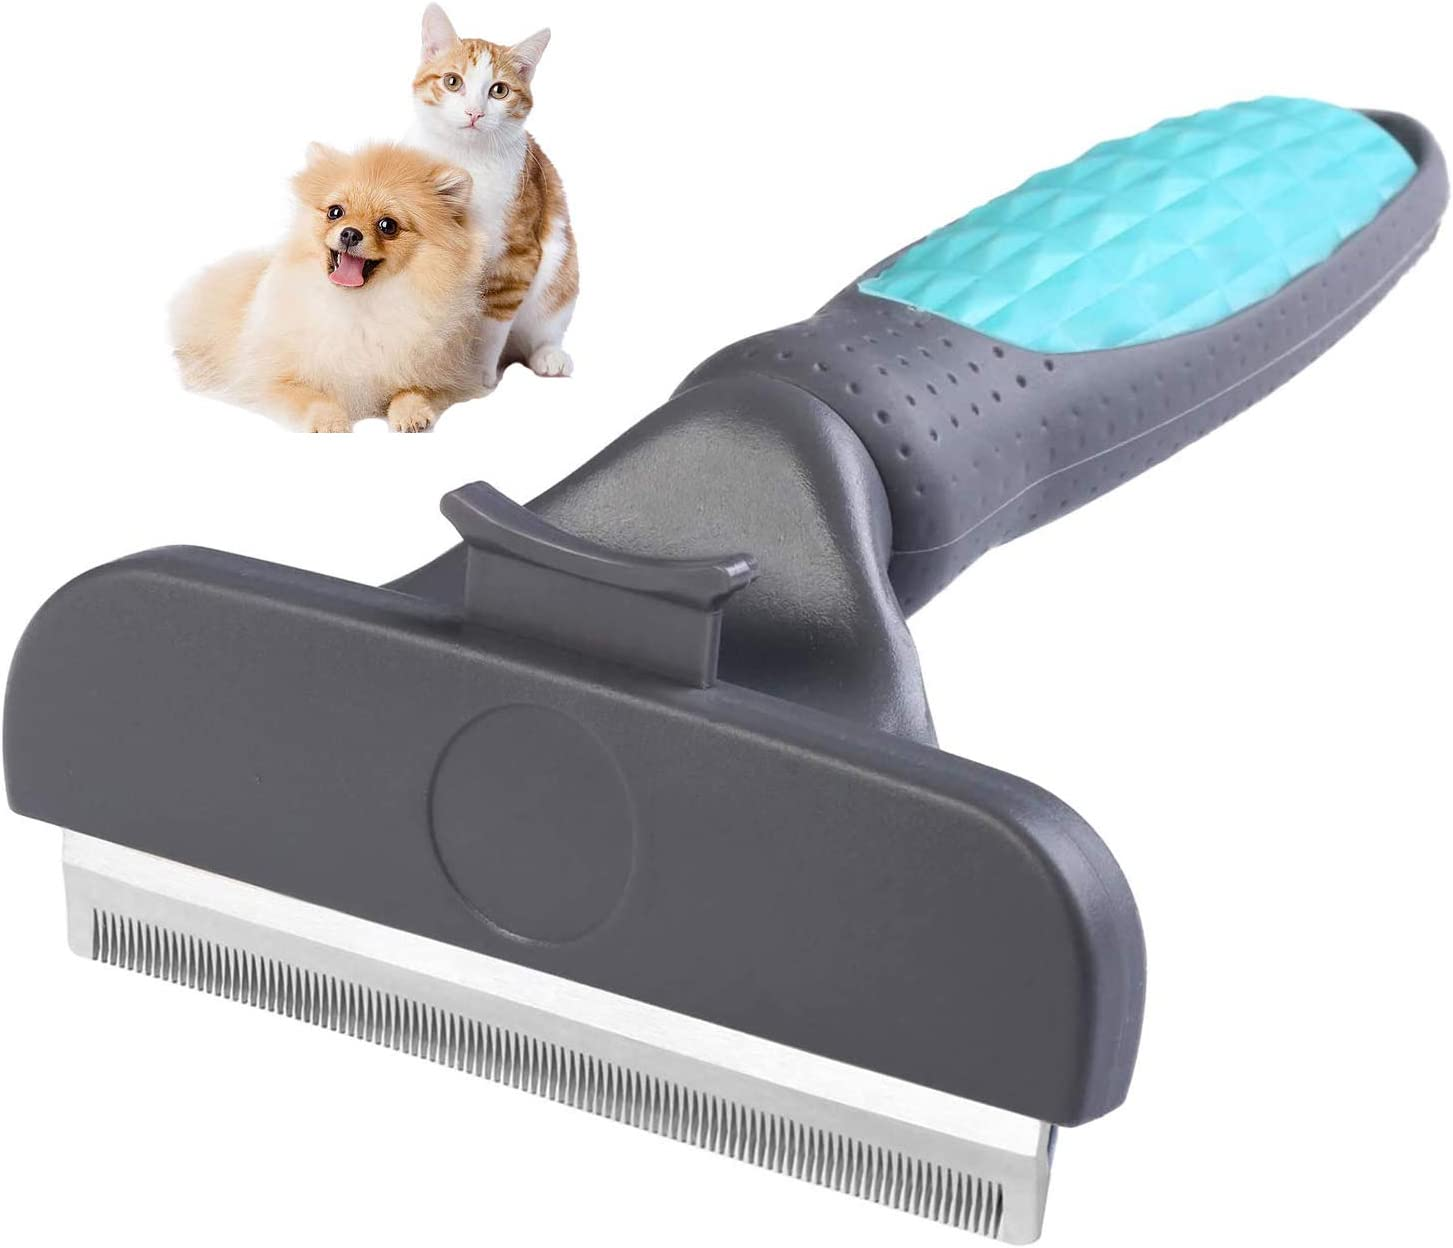 Silicone Dog Cat Hair Removal Brush Pet Grooming Tool Cleaning Hair Brush Green Odis Pet Sticky Brush